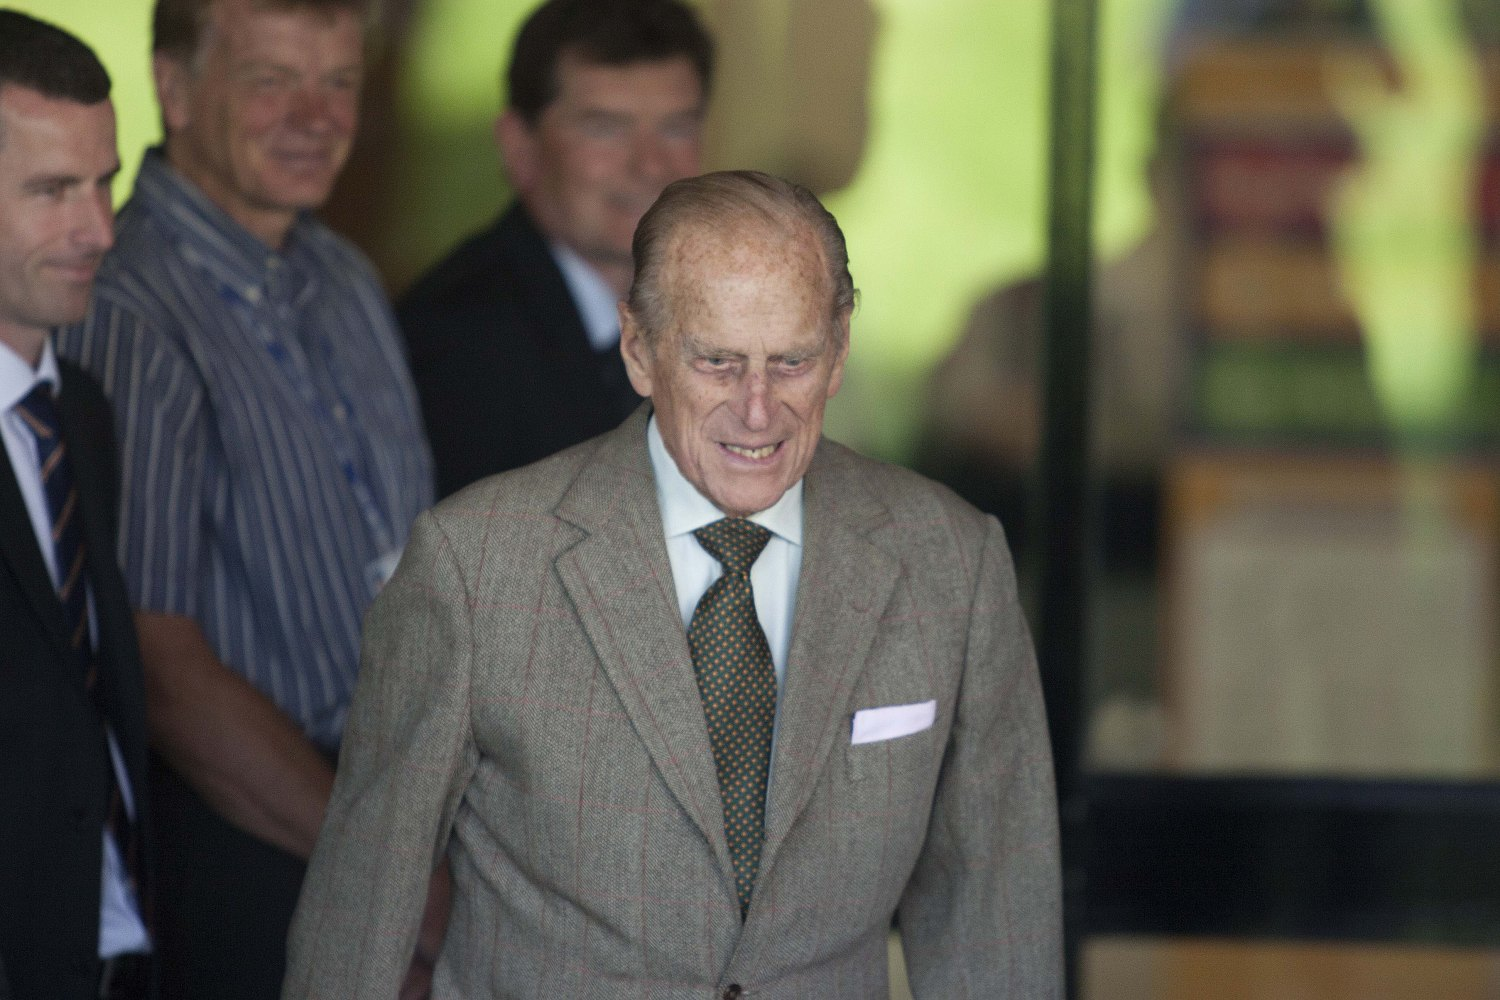 Prince Philip has given up his driving licence. (Splash News and Pictures)